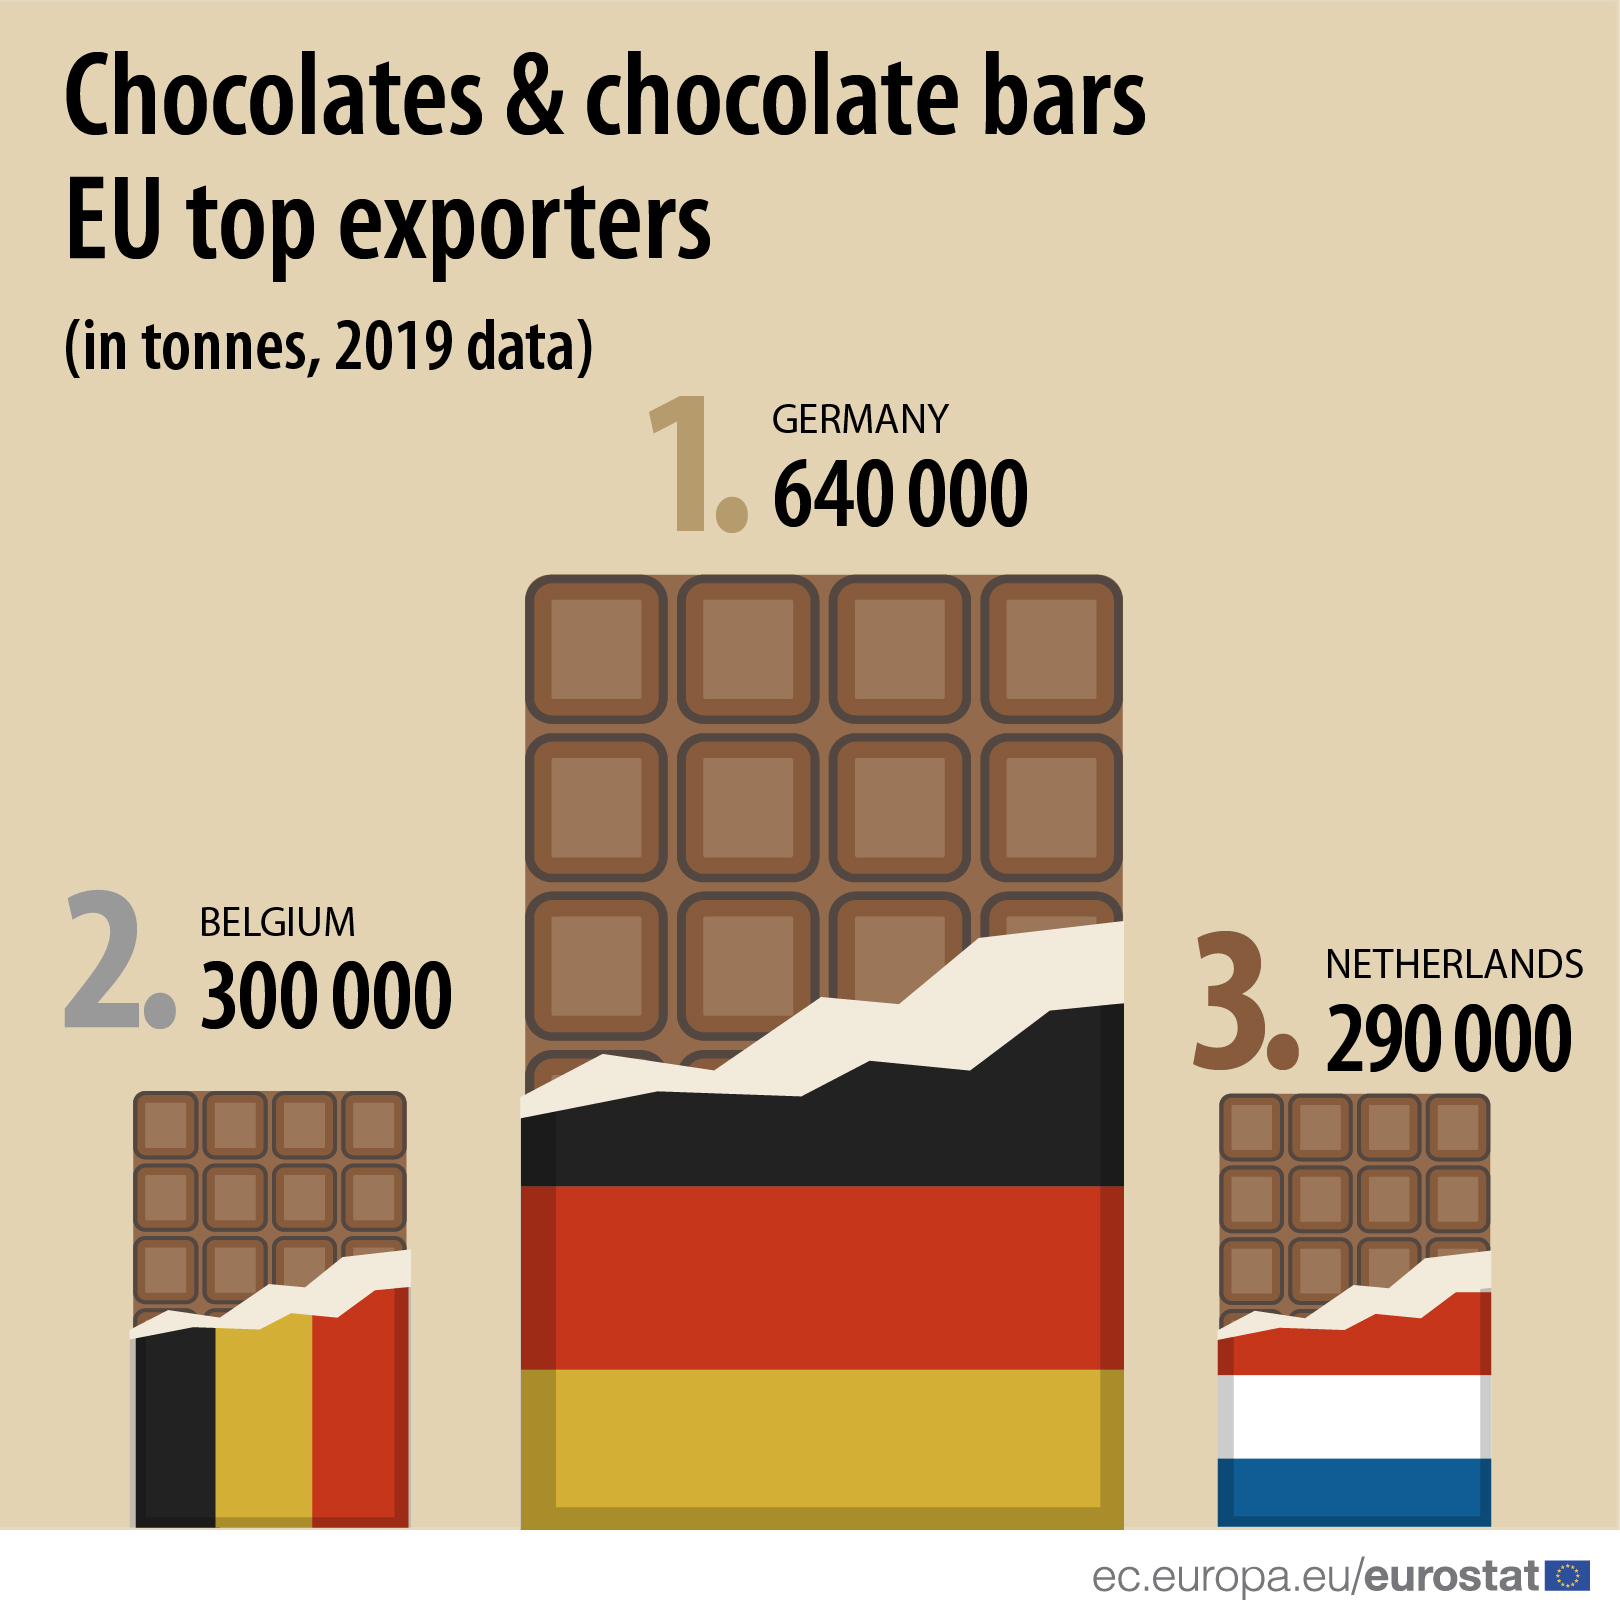 Chocolates & chocolate bars EU top exporters (in tonnes, 2019 data)